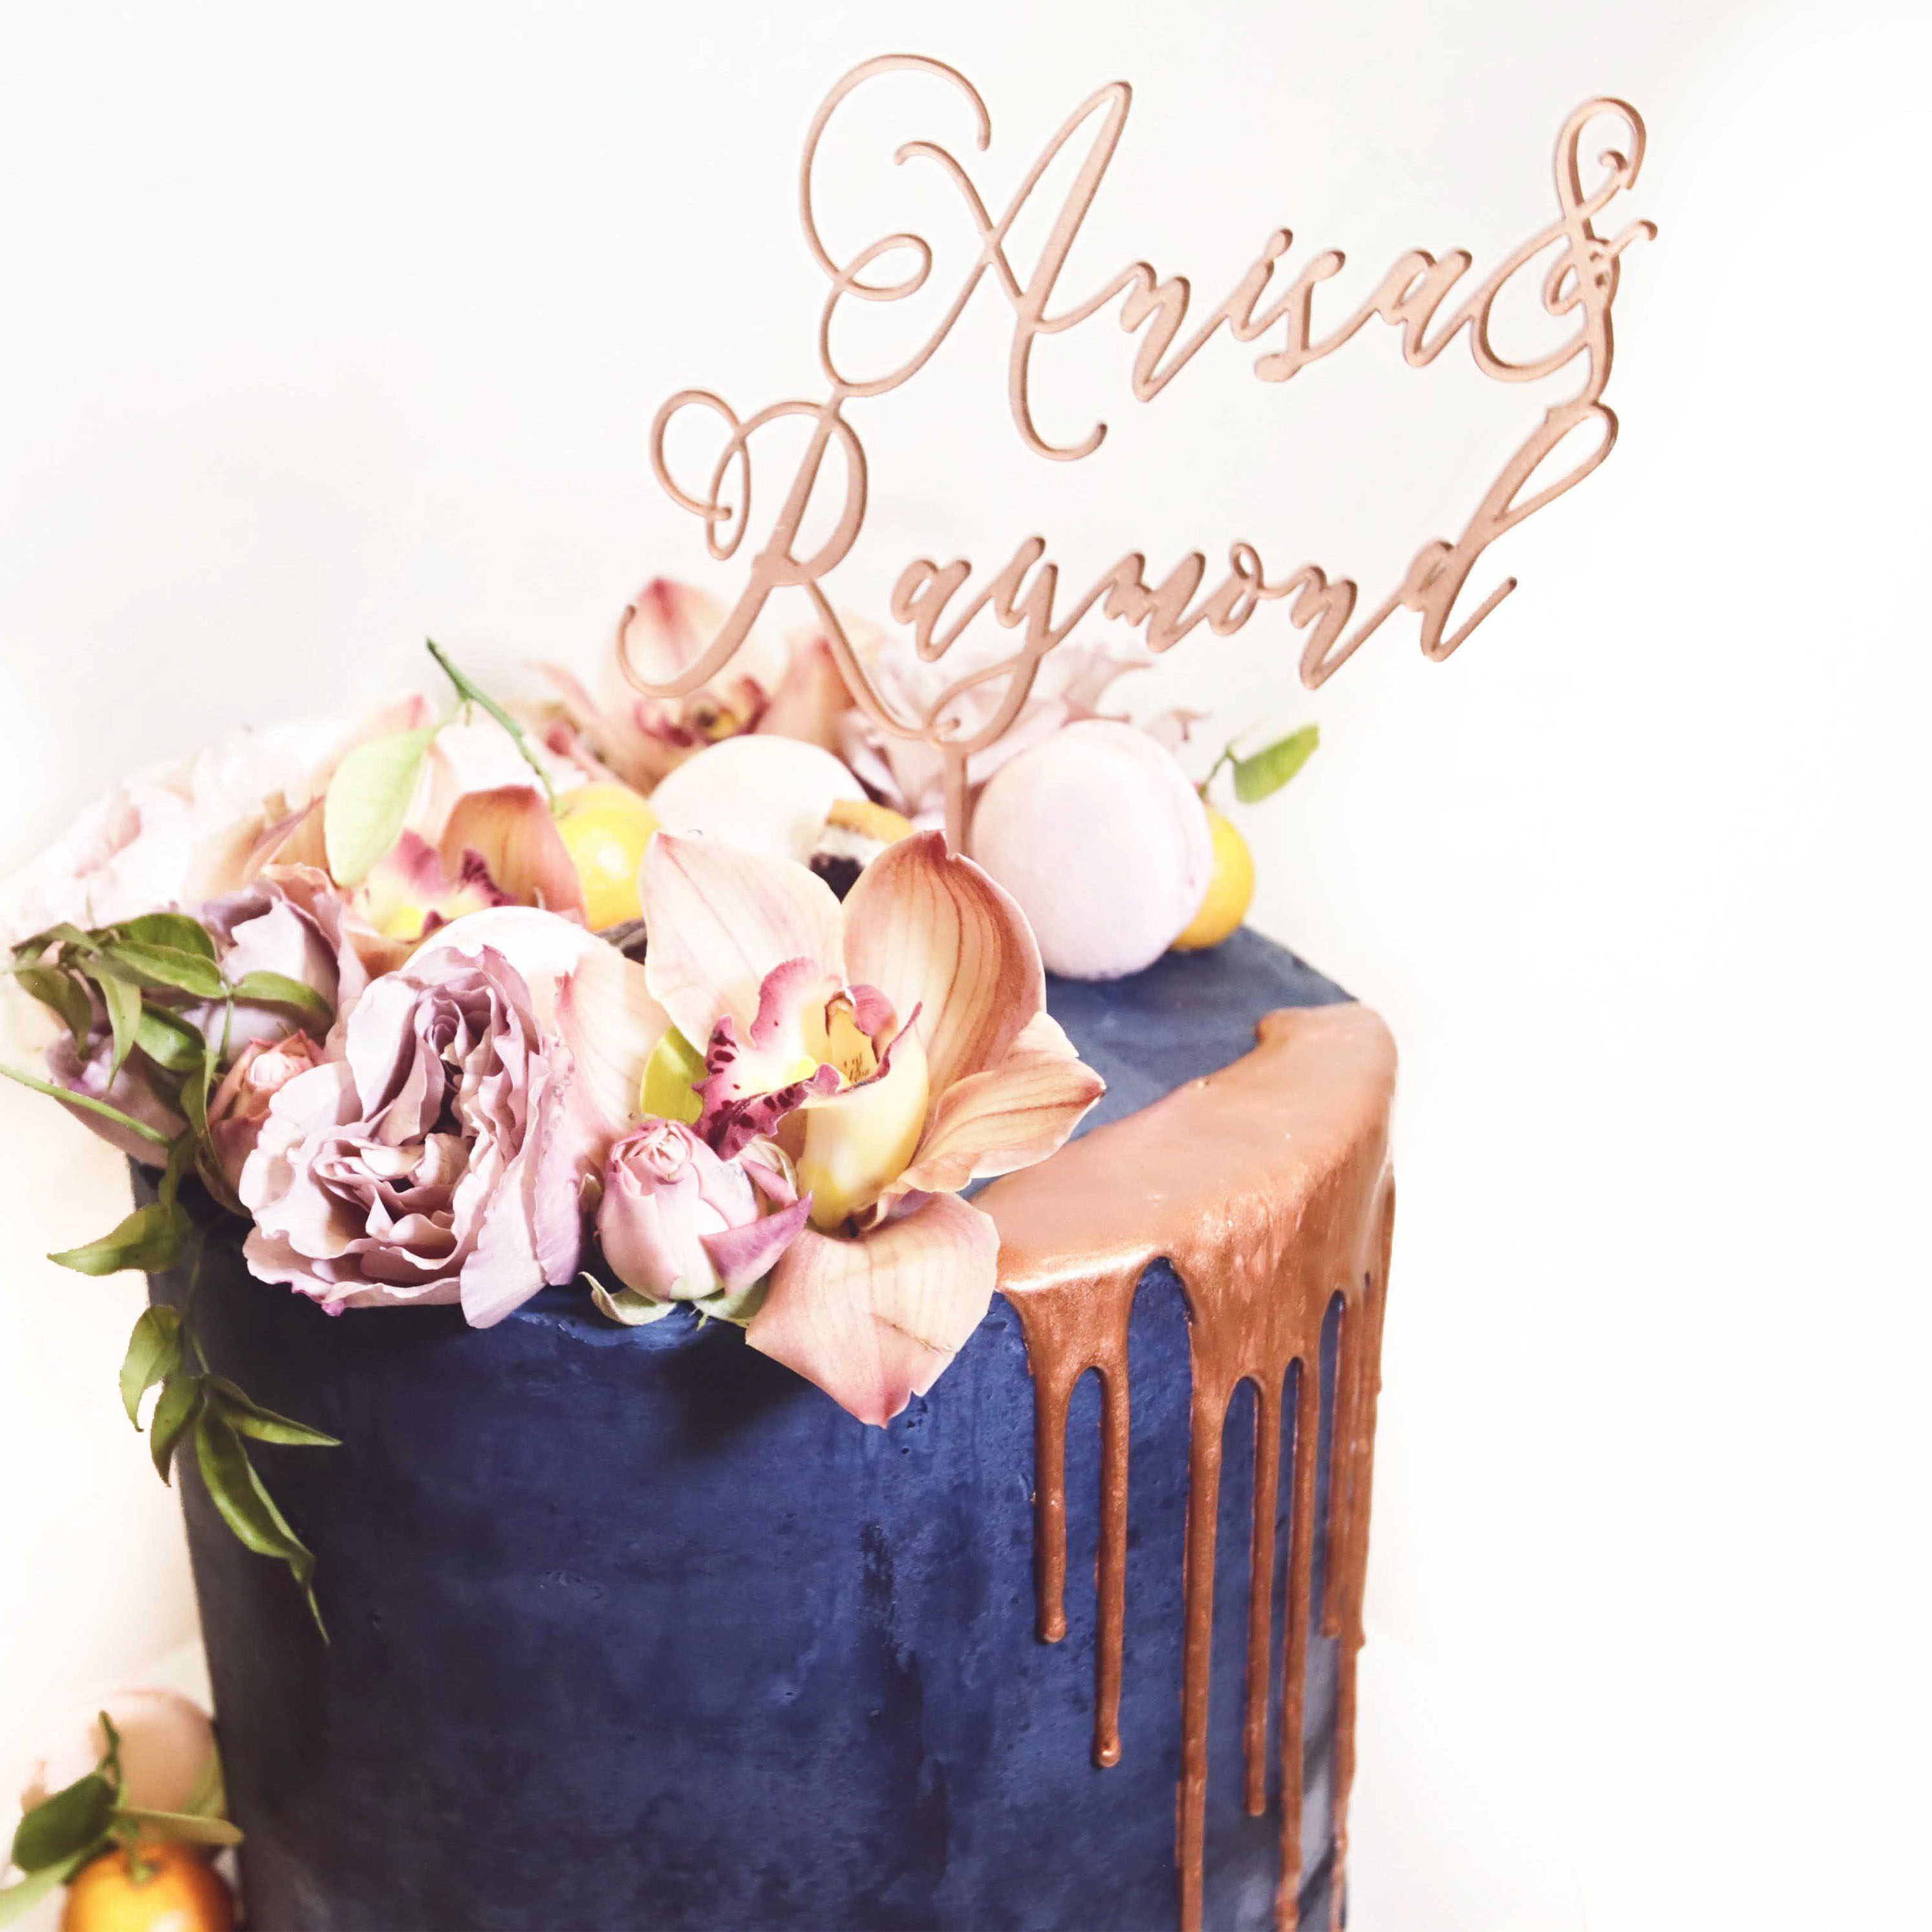 Sweetlilycakesblog sweet lily wedding cake copper drip cake with cake topper dhlflorist Choice Image